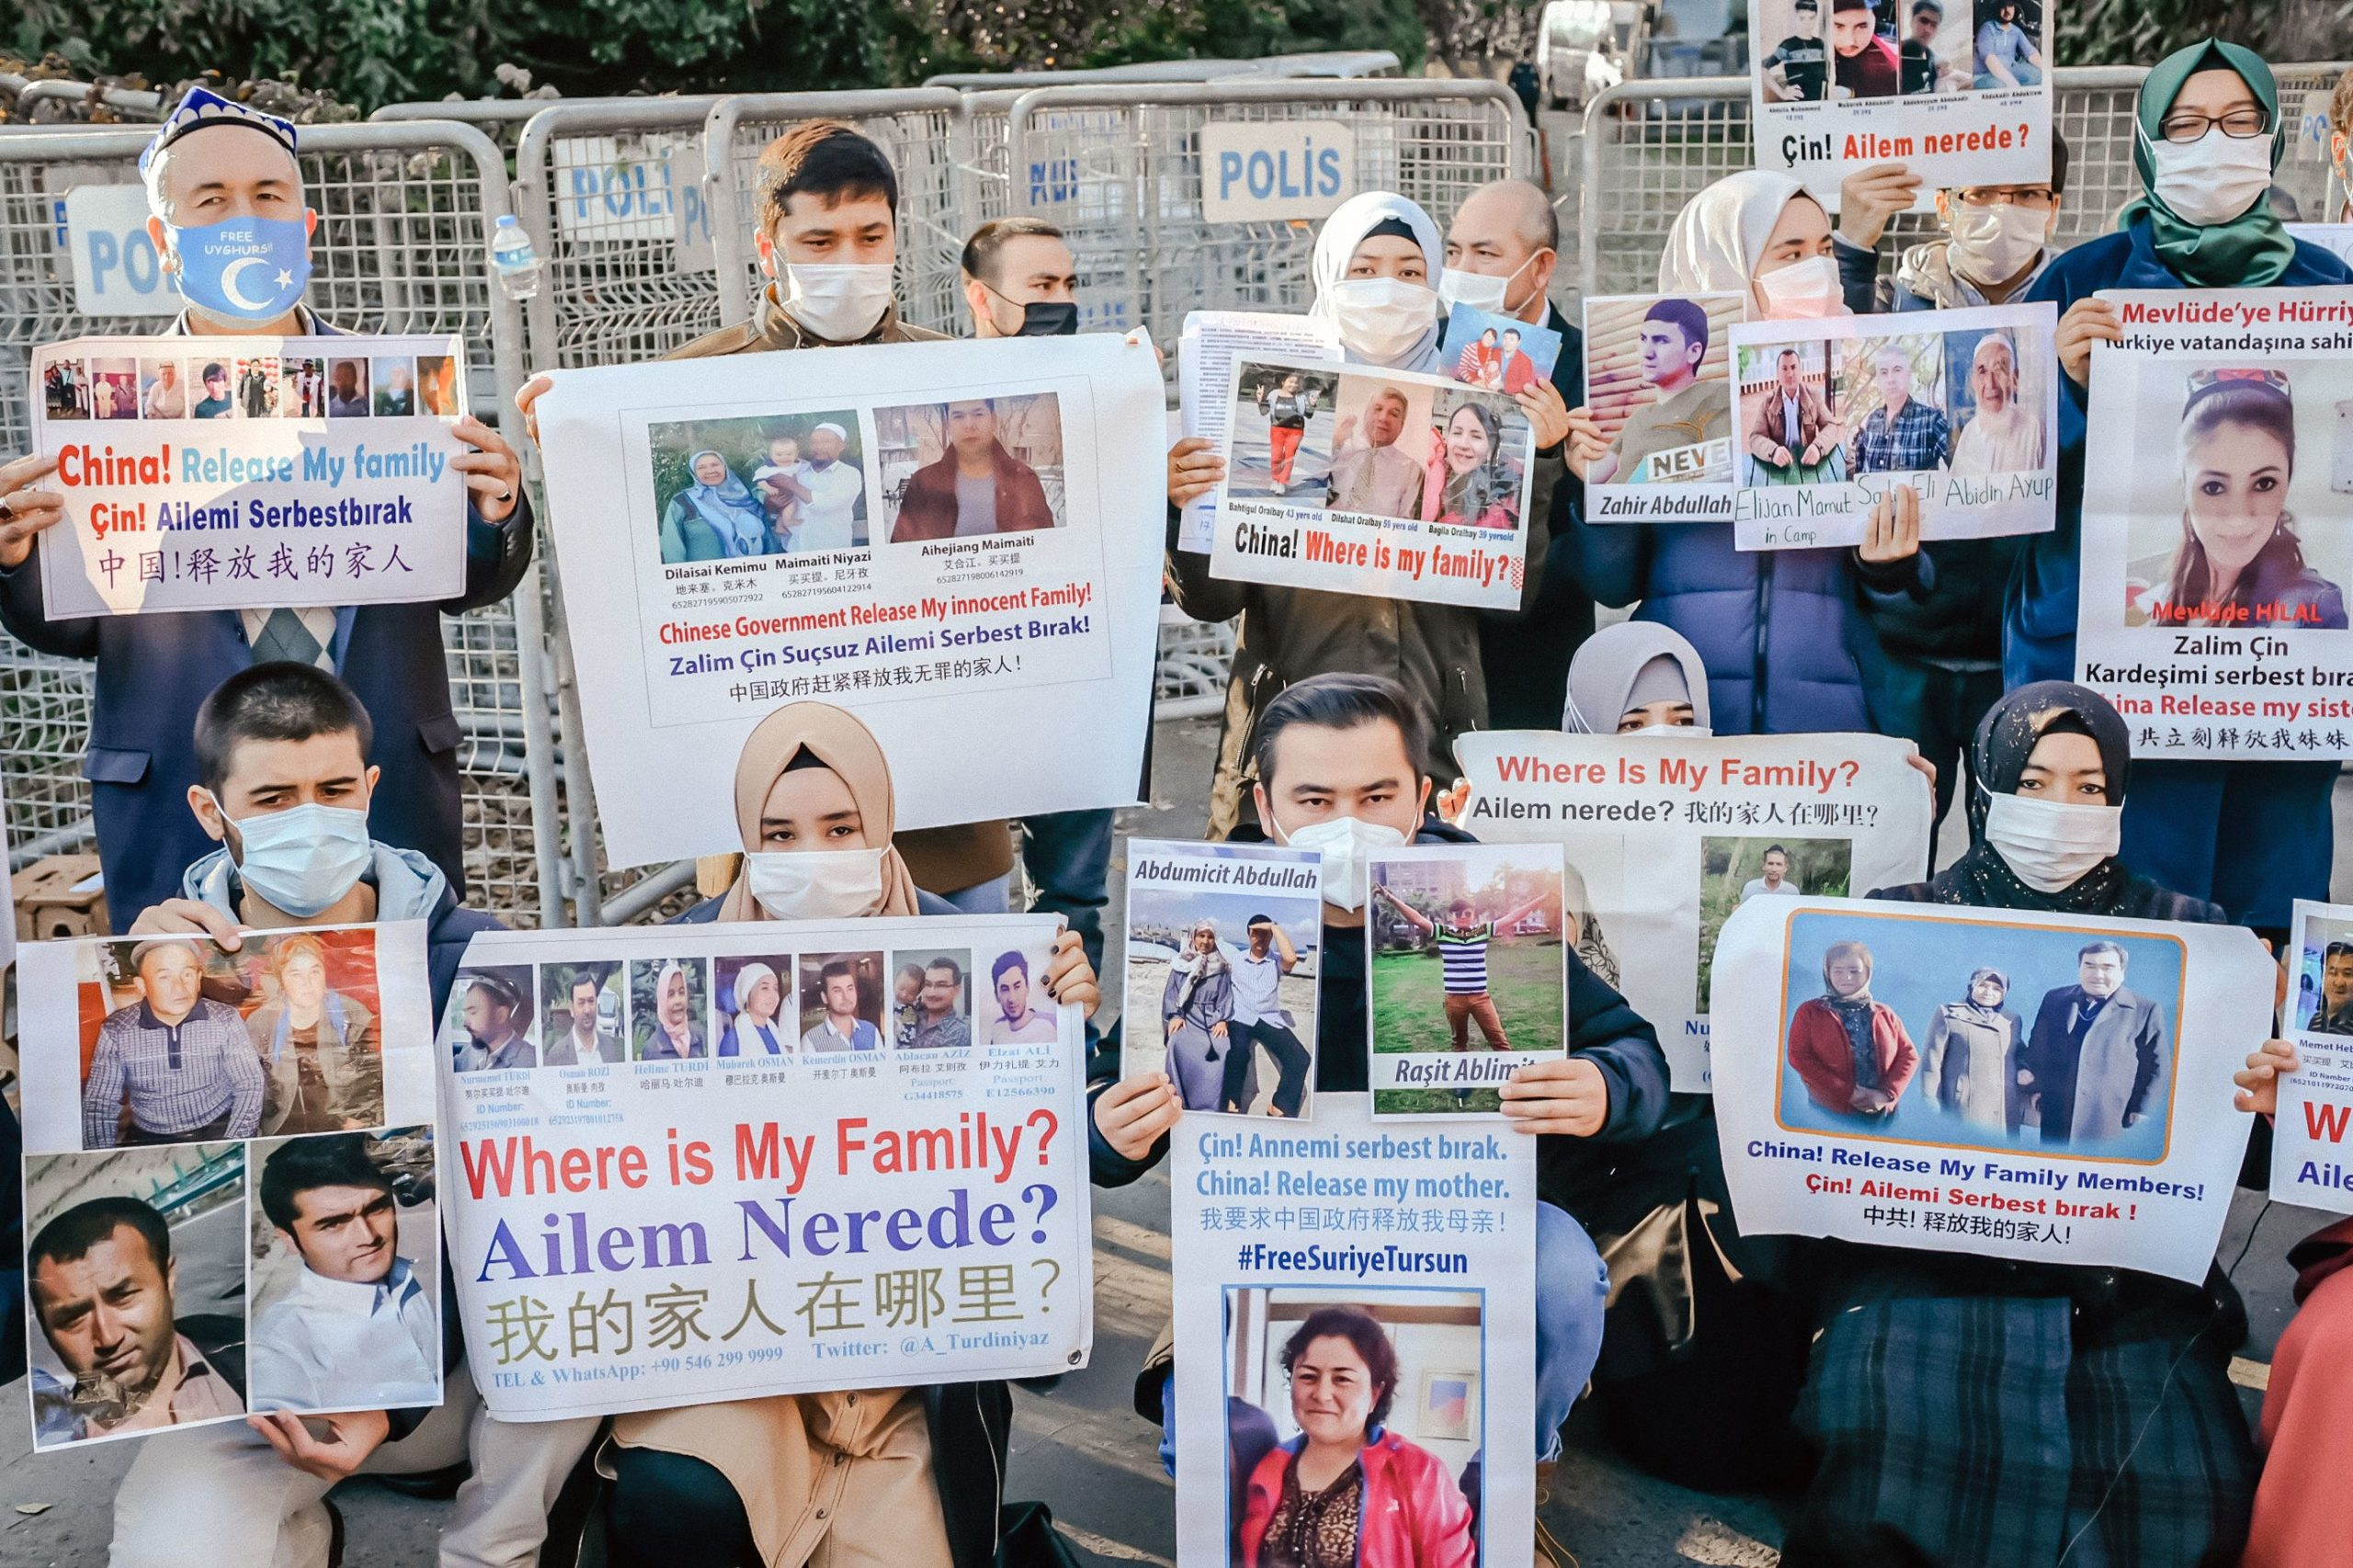 "Members of the Muslim Uighur minority hold placards as they demonstrate in front of the Chinese consulate on December 30, 2020, in Istanbul, to ask for news of their relatives and to express their concern after China announced the ratification of an extradition treaty with Turkey. - The Chinese parliament ratified on December 26, 2020 an extradition treaty signed in 2017 with Ankara, a text that Beijing wants to use in particular to speed up the return of certain Muslim Uyghurs suspected of ""terrorism"" and who are refugees in Turkey. But the head of Turkish diplomacy said on December 30, 2020 that Ankara was not going to return Muslim Uyghurs to China, despite Beijing's ratification of an extradition treaty that worries the 50,000 members of this community who have taken refuge in the country. (Photo by BULENT KILIC / AFP) (Photo by BULENT KILIC/AFP via Getty Images)"